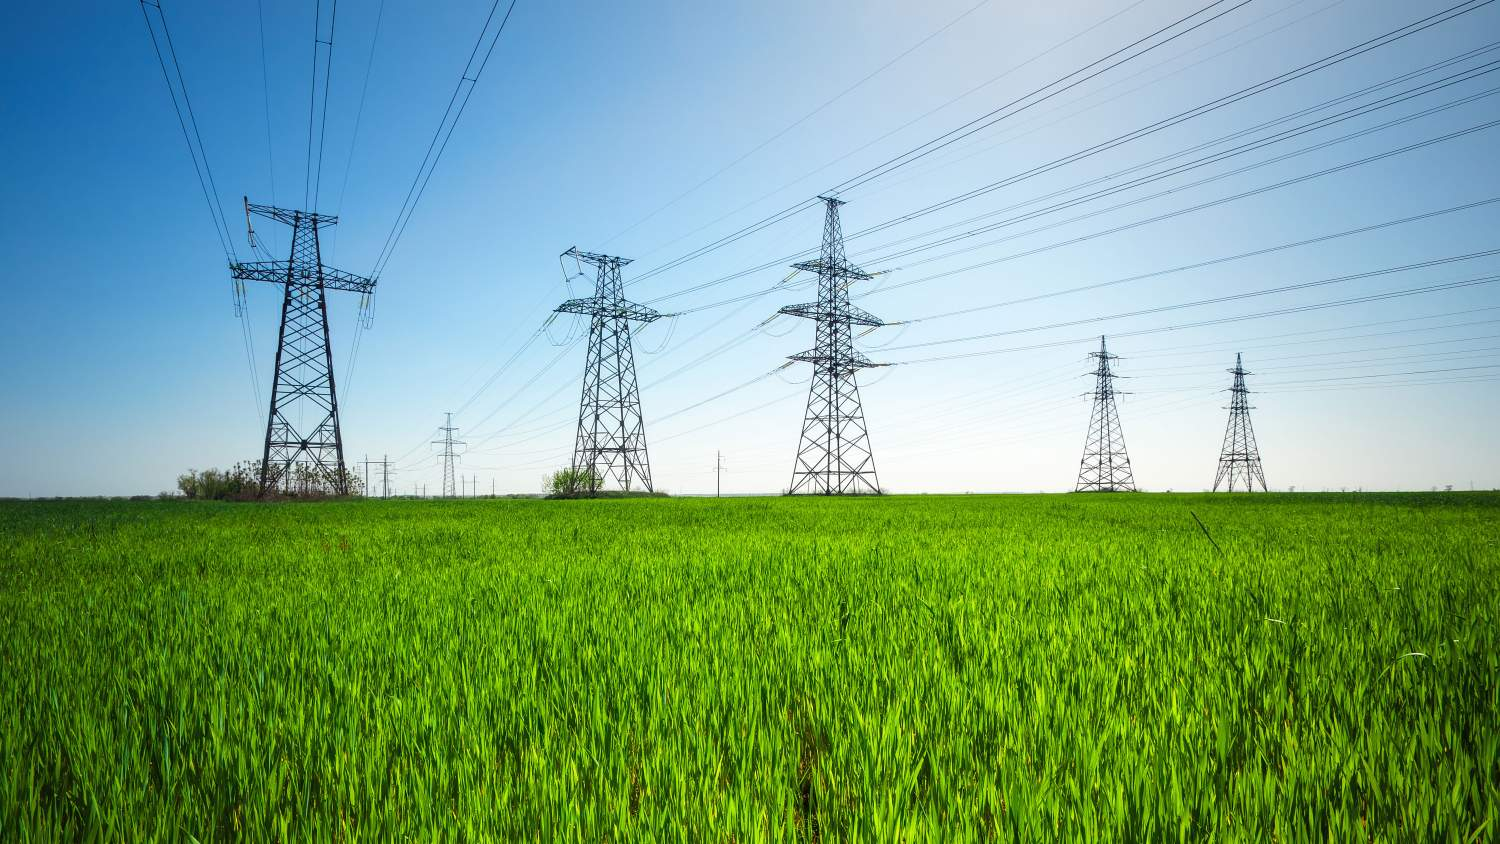 HIgh voltage lines and power pylons in a a green agricultural landscape with a blue sky on a sunny day